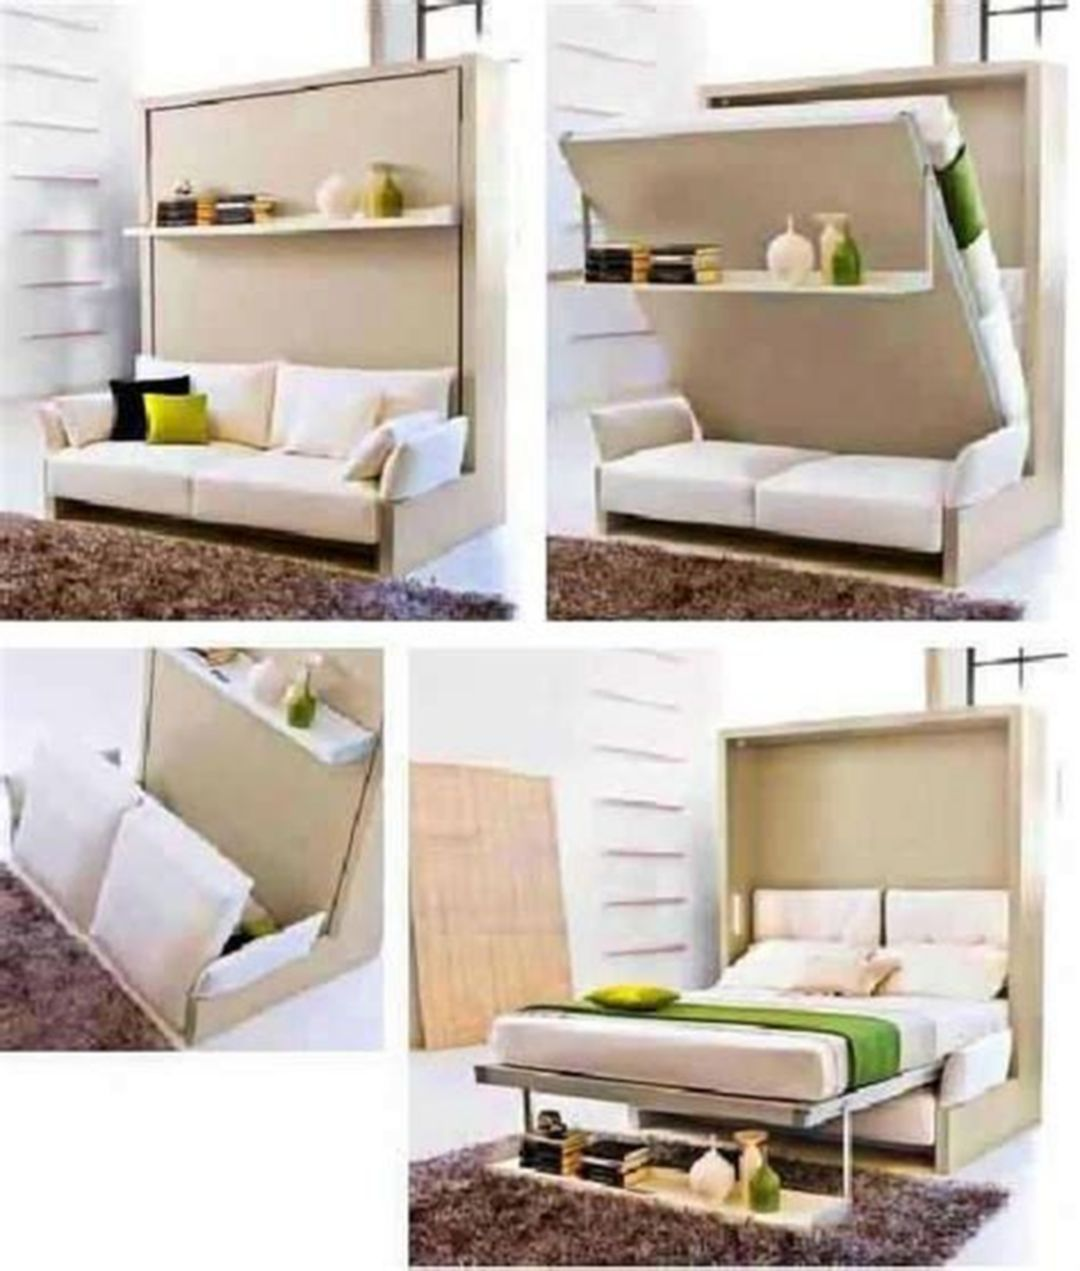 30 Amazing Small Spaces Living Room Design Ideas: 30 Amazing Convertible Furniture Design For Small Spaces